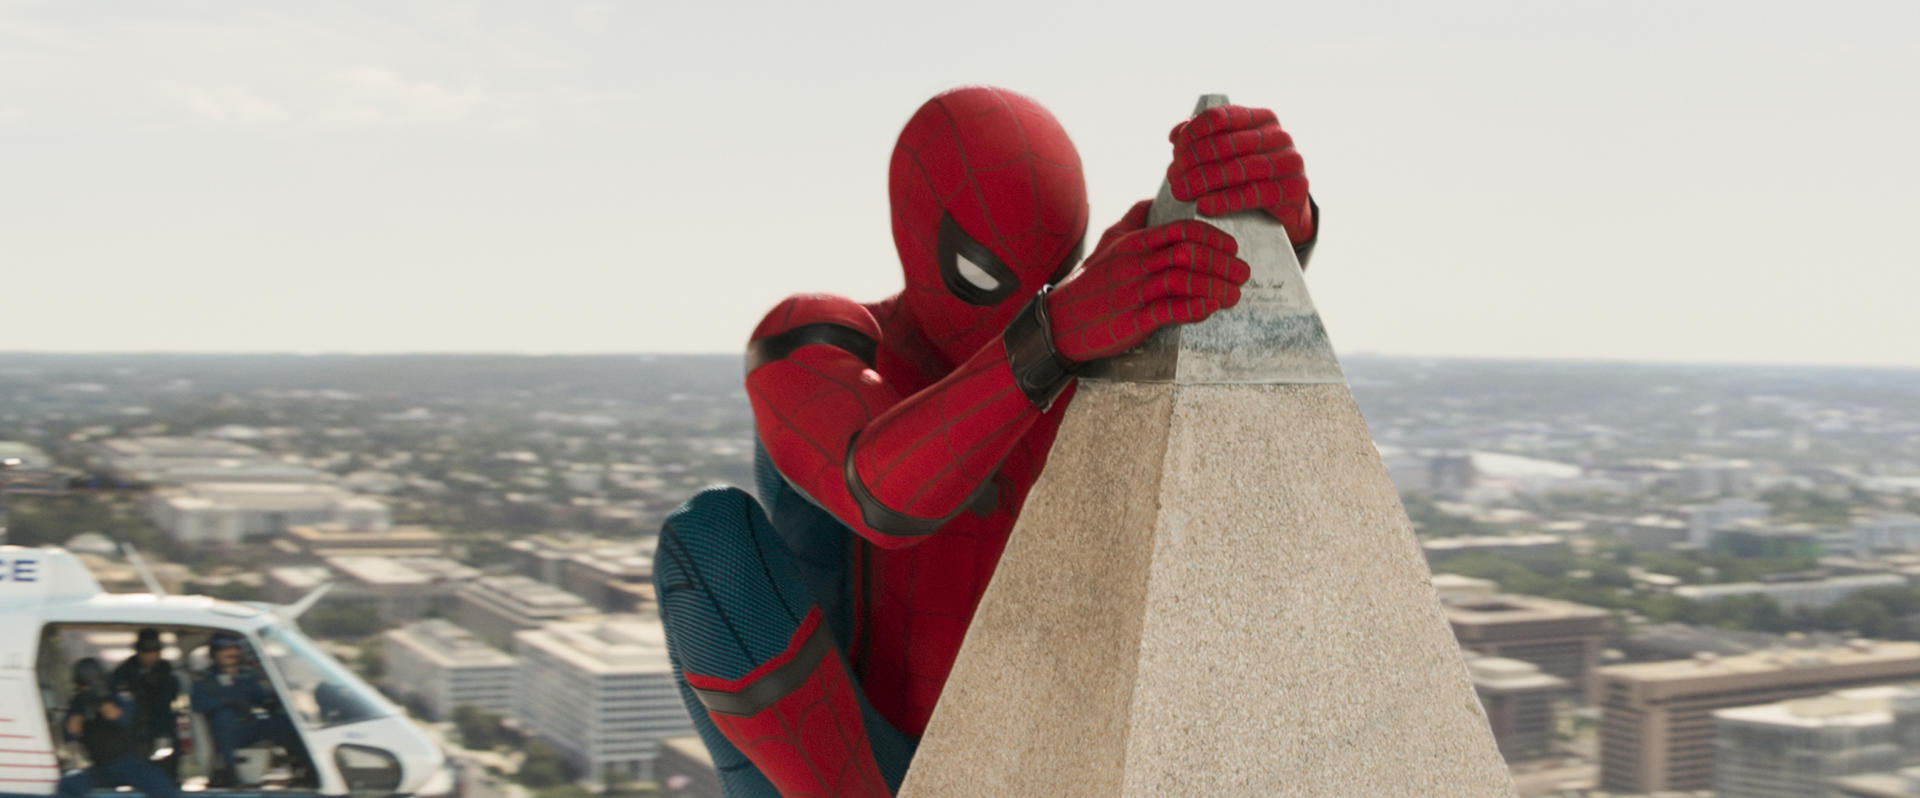 spider-man-homecoming (2)